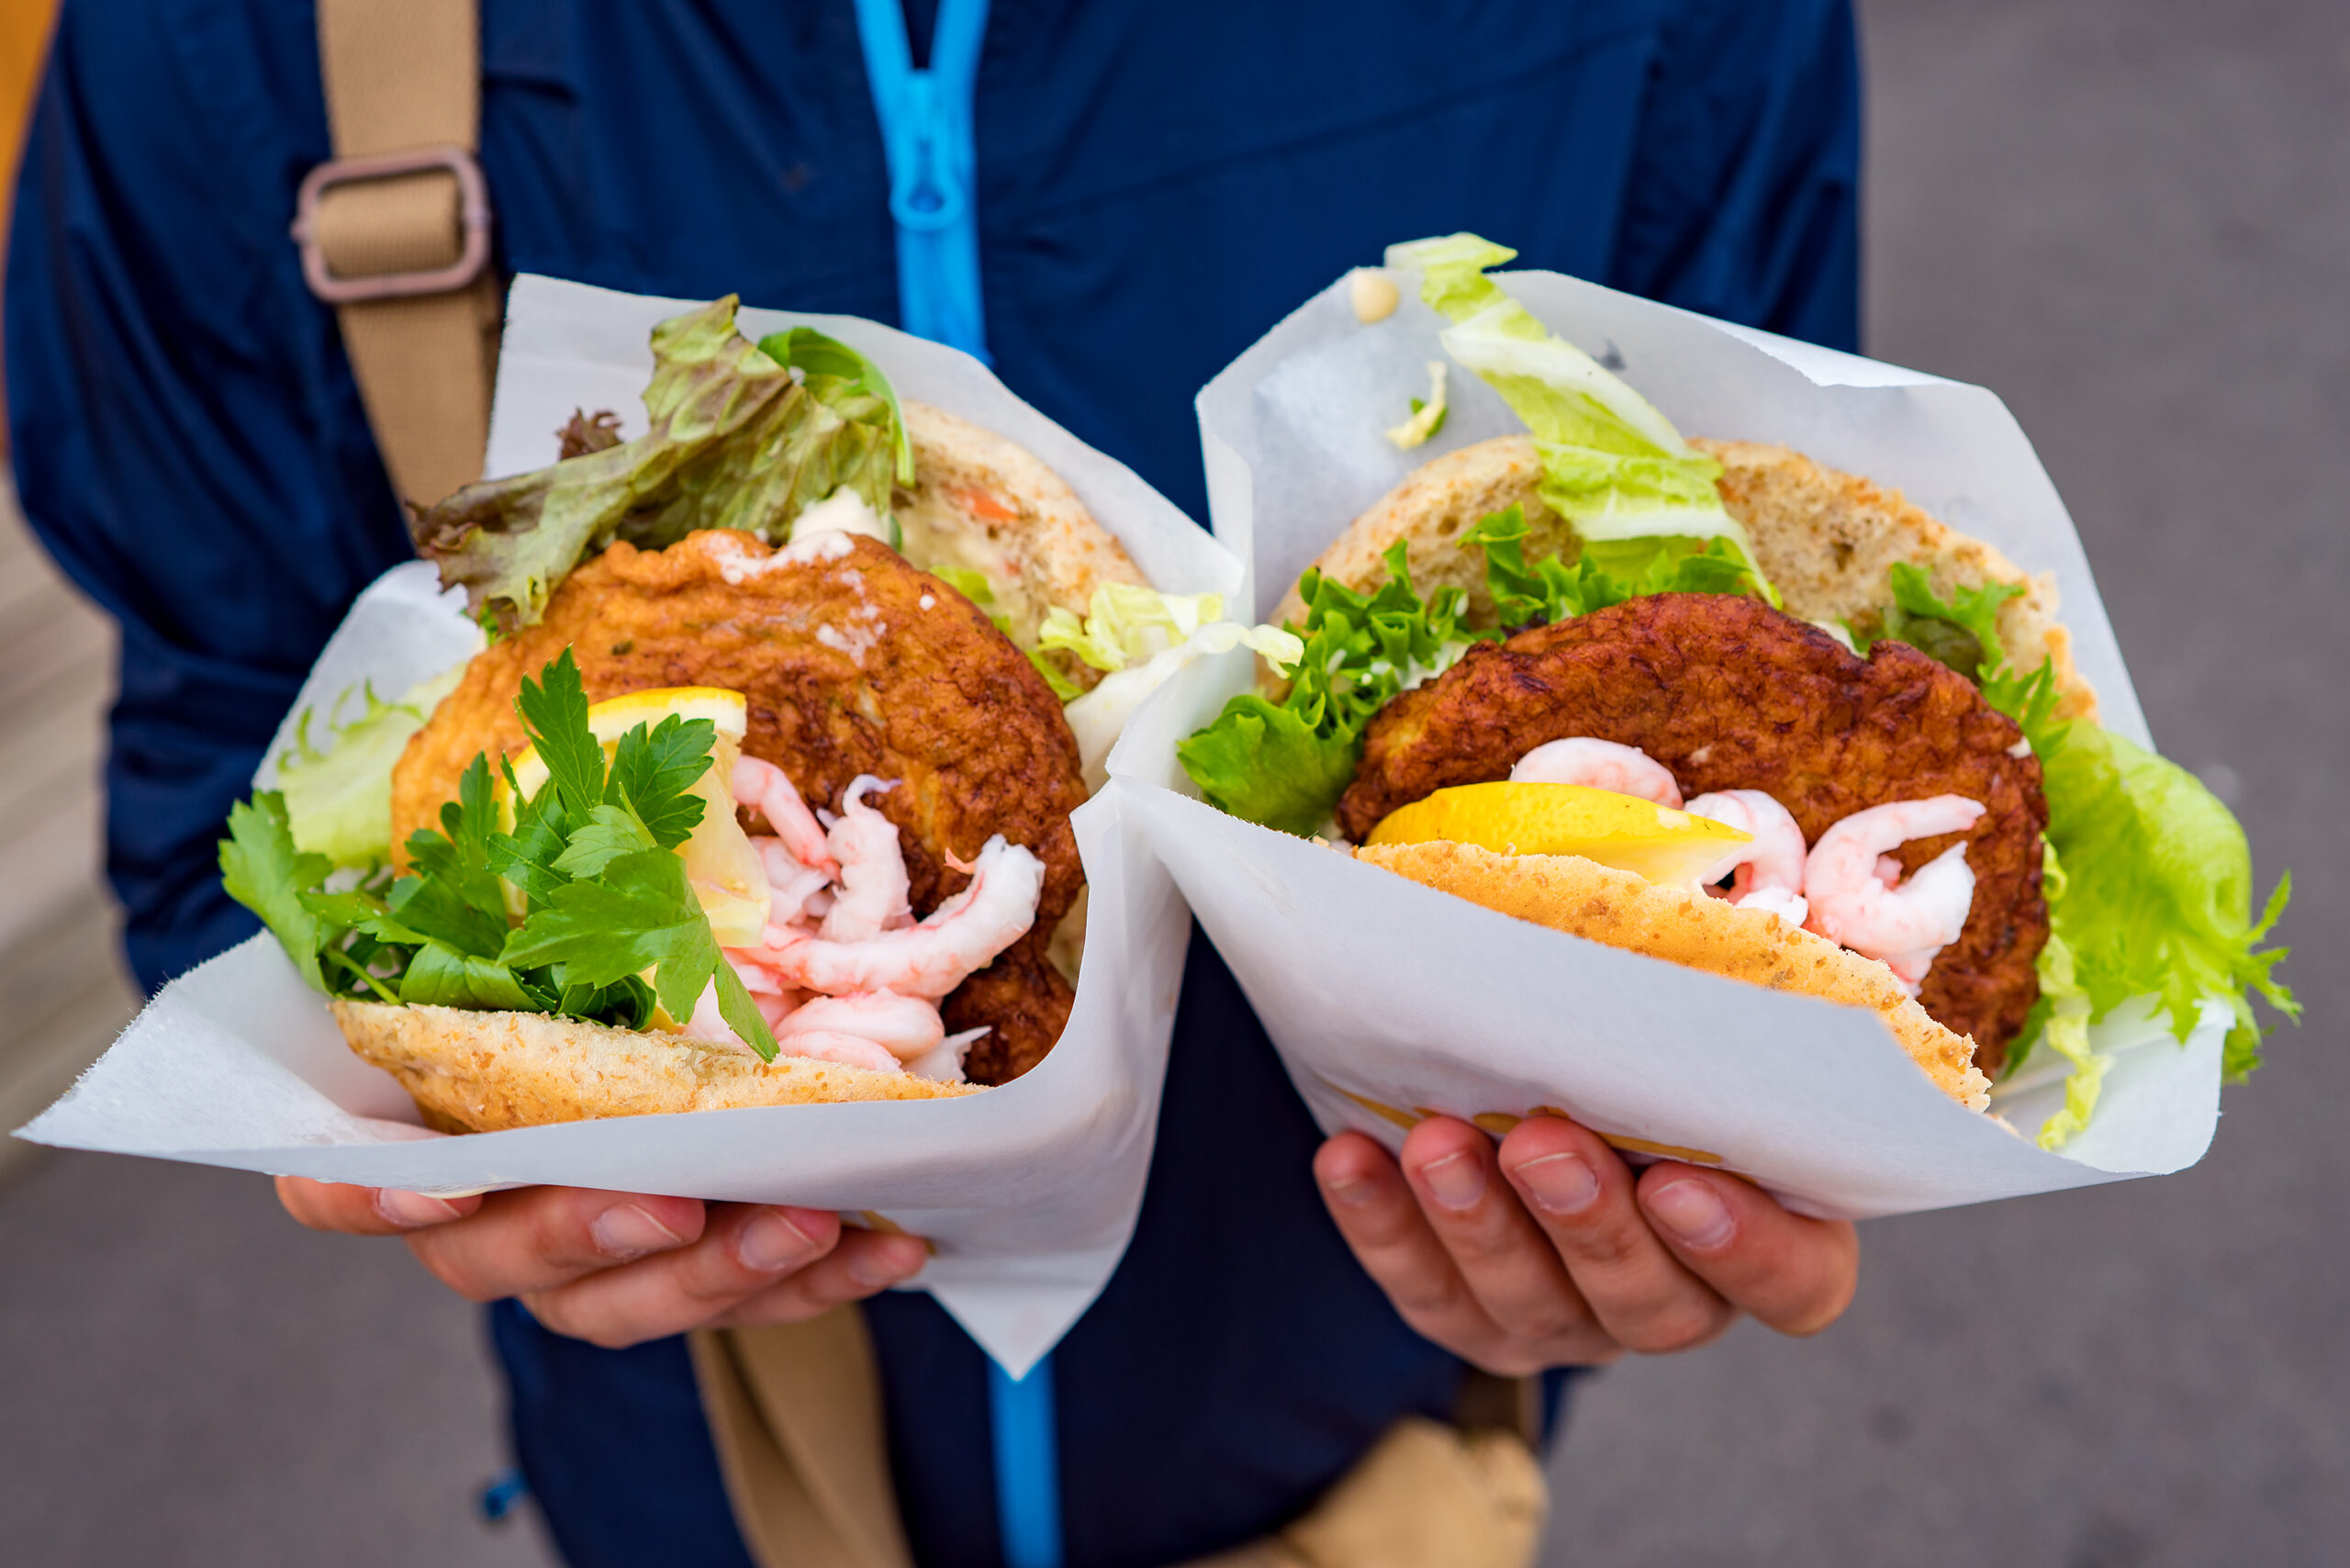 Fast street food seafood. Norway Lofoten Islands, fish cutlet with salad and grilled shrimp